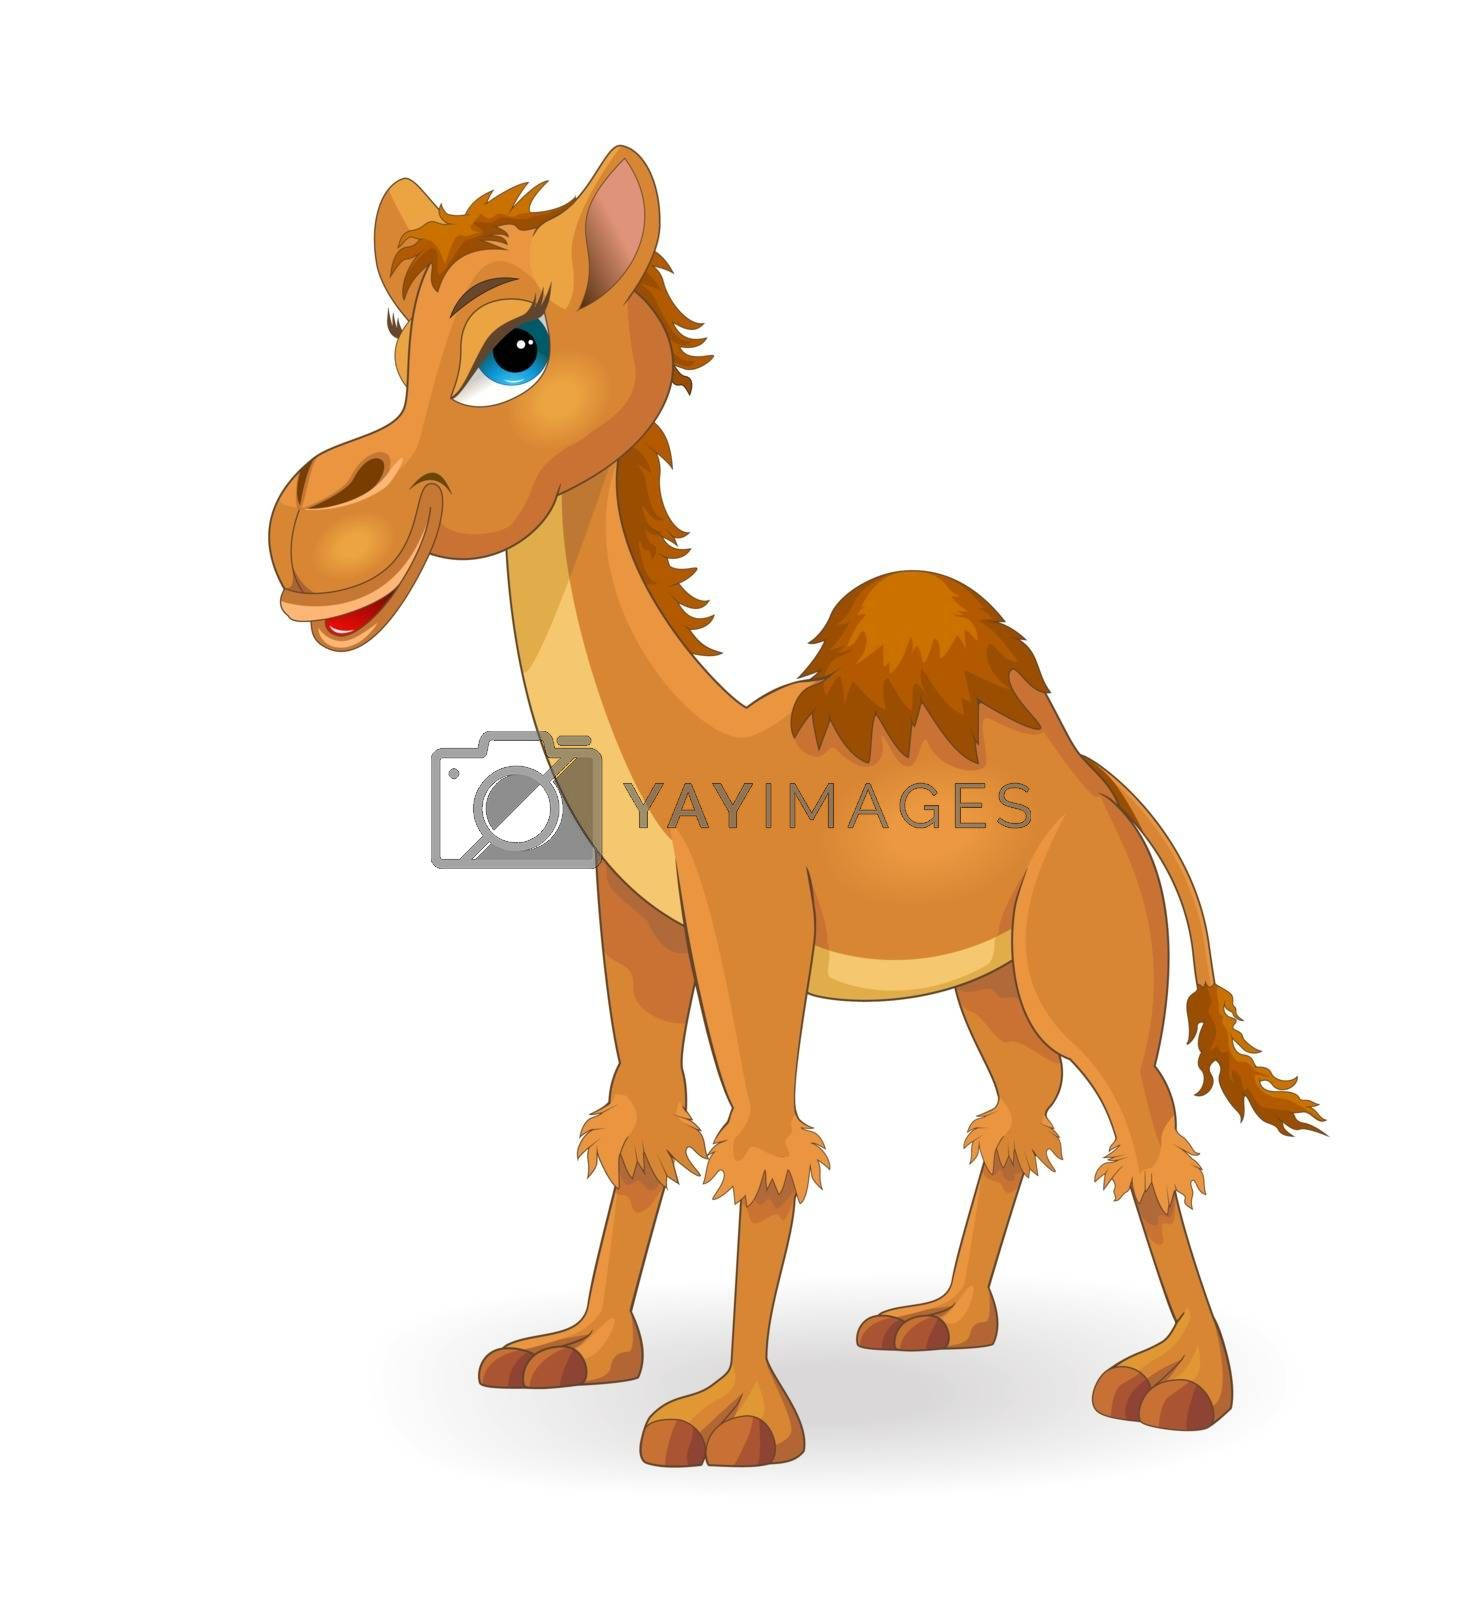 Cartoon camel of brown color on a white background.